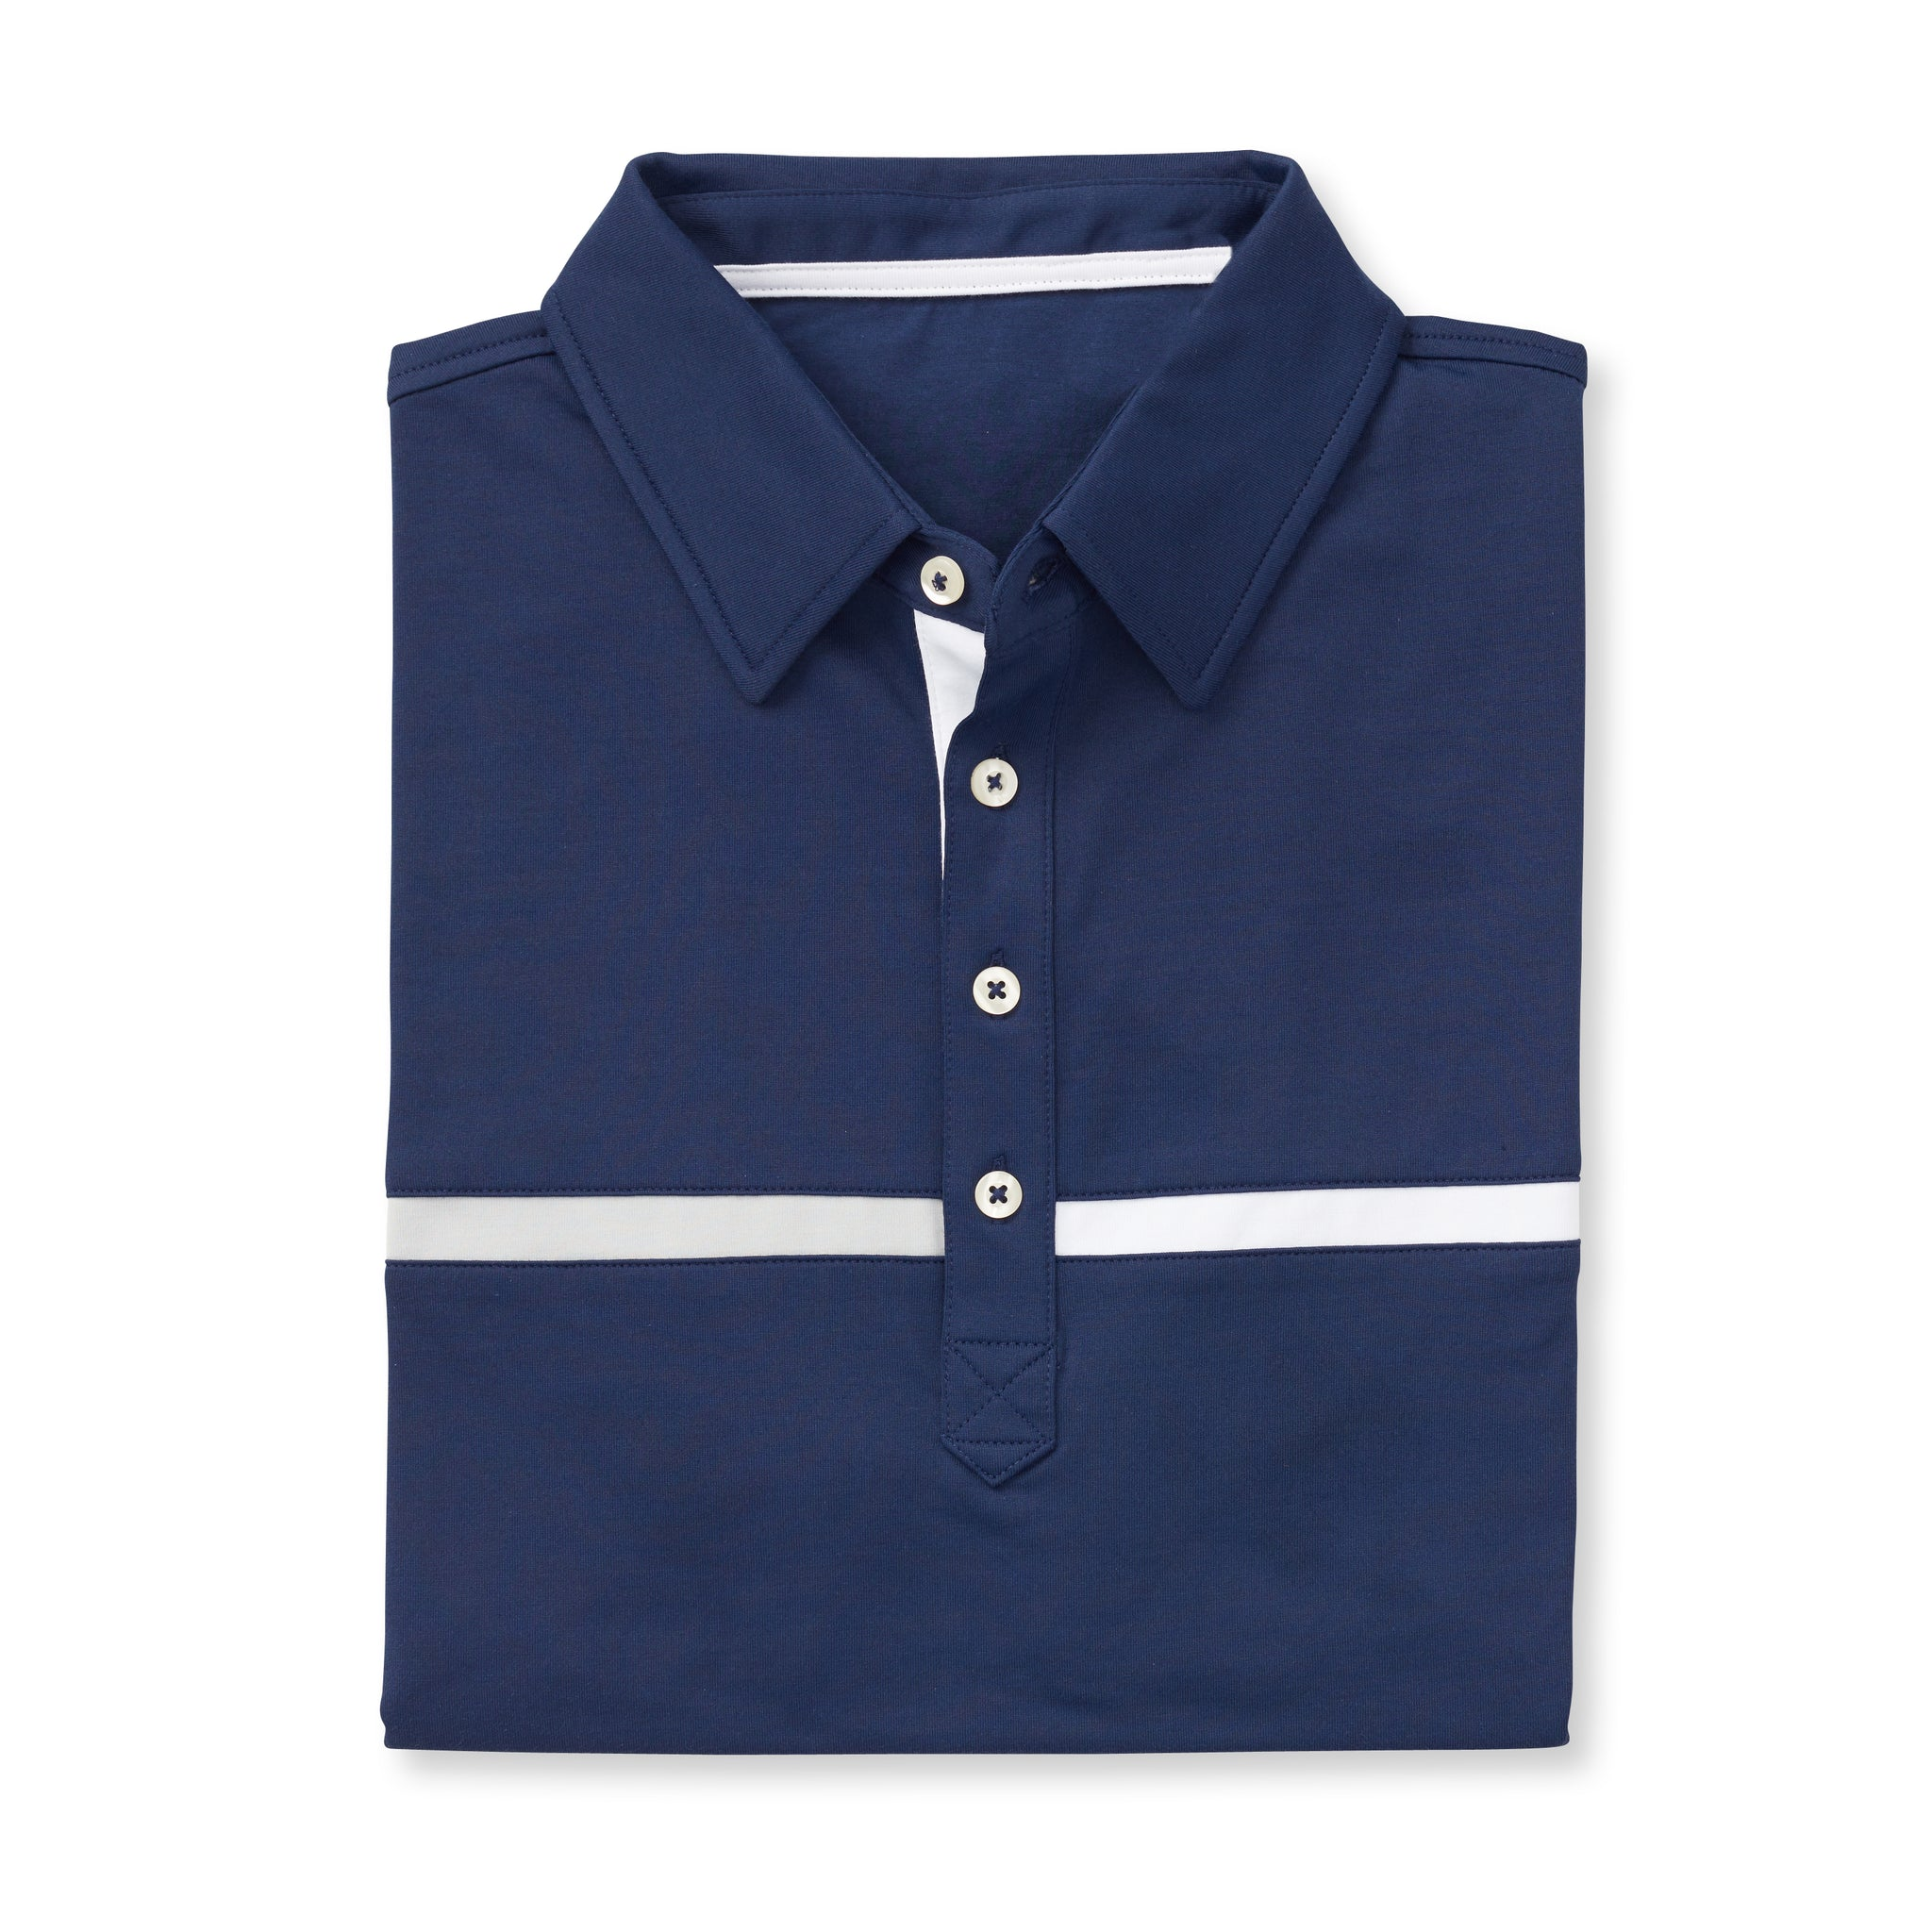 LUXTEC Champions Color Block Short Sleeve Polo - Navy IS72420